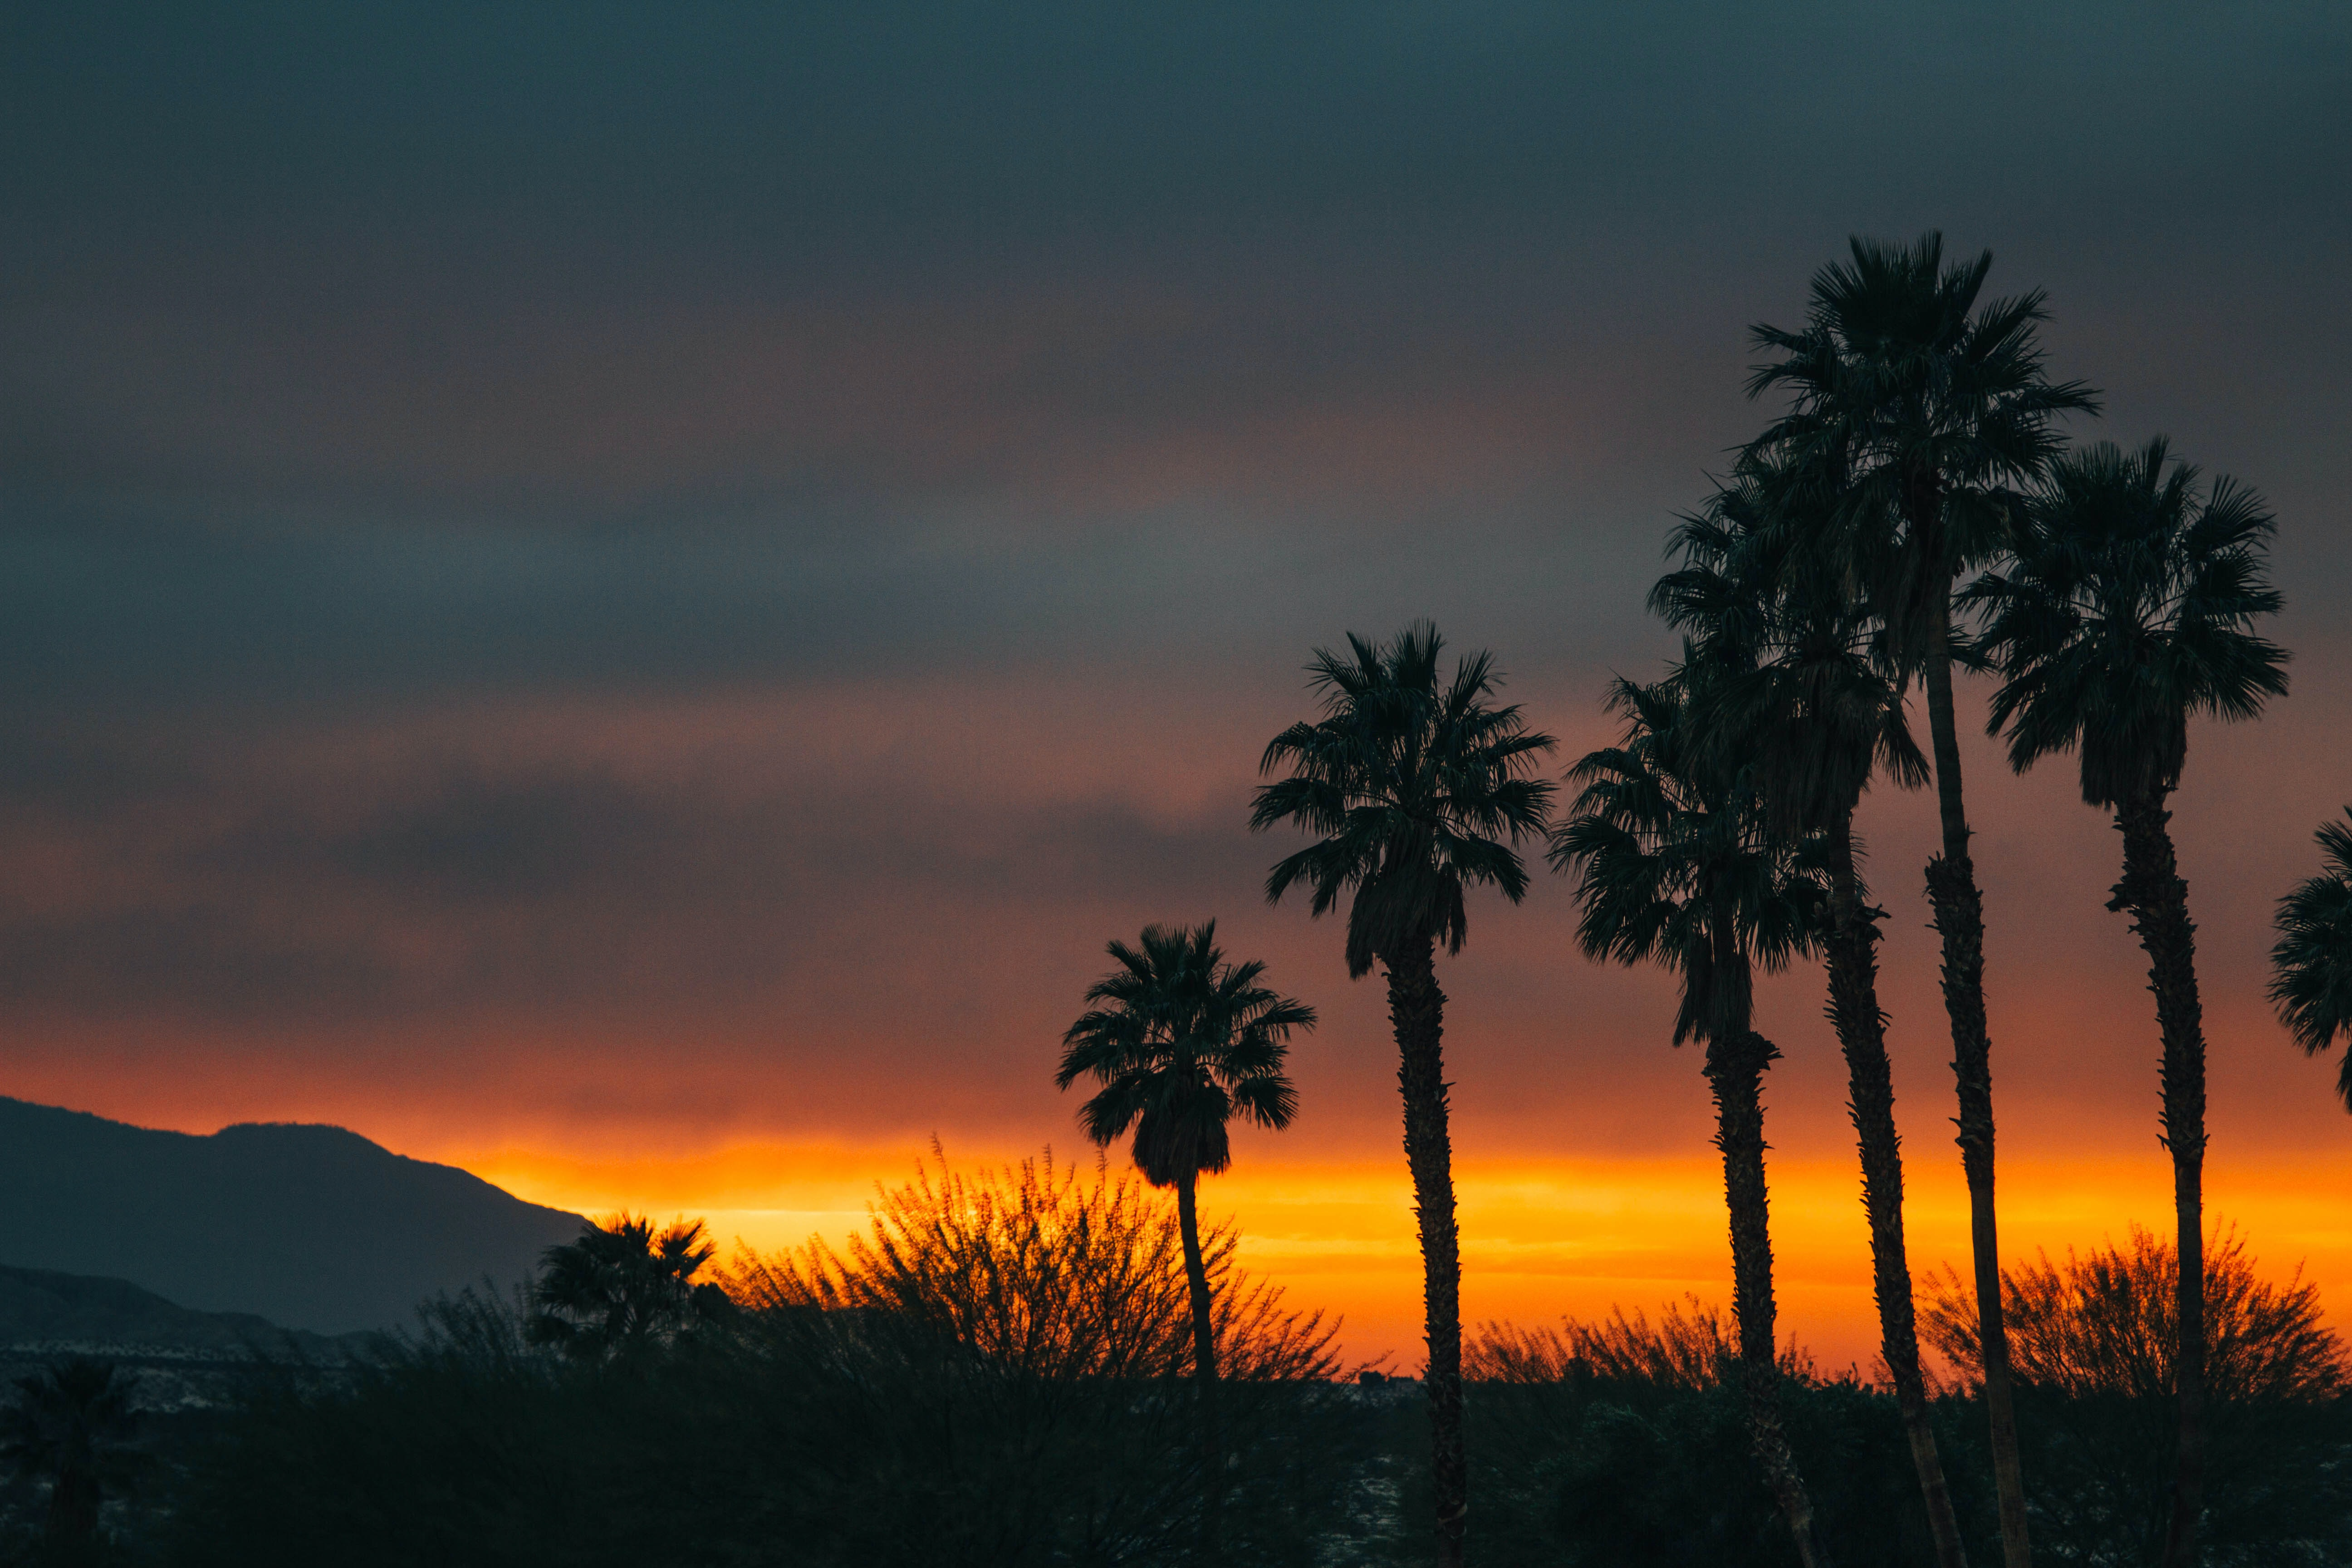 Silhouette palm trees and bushes at dawn-or-dusk with a hill in the distance and an orange sky and cloud cover